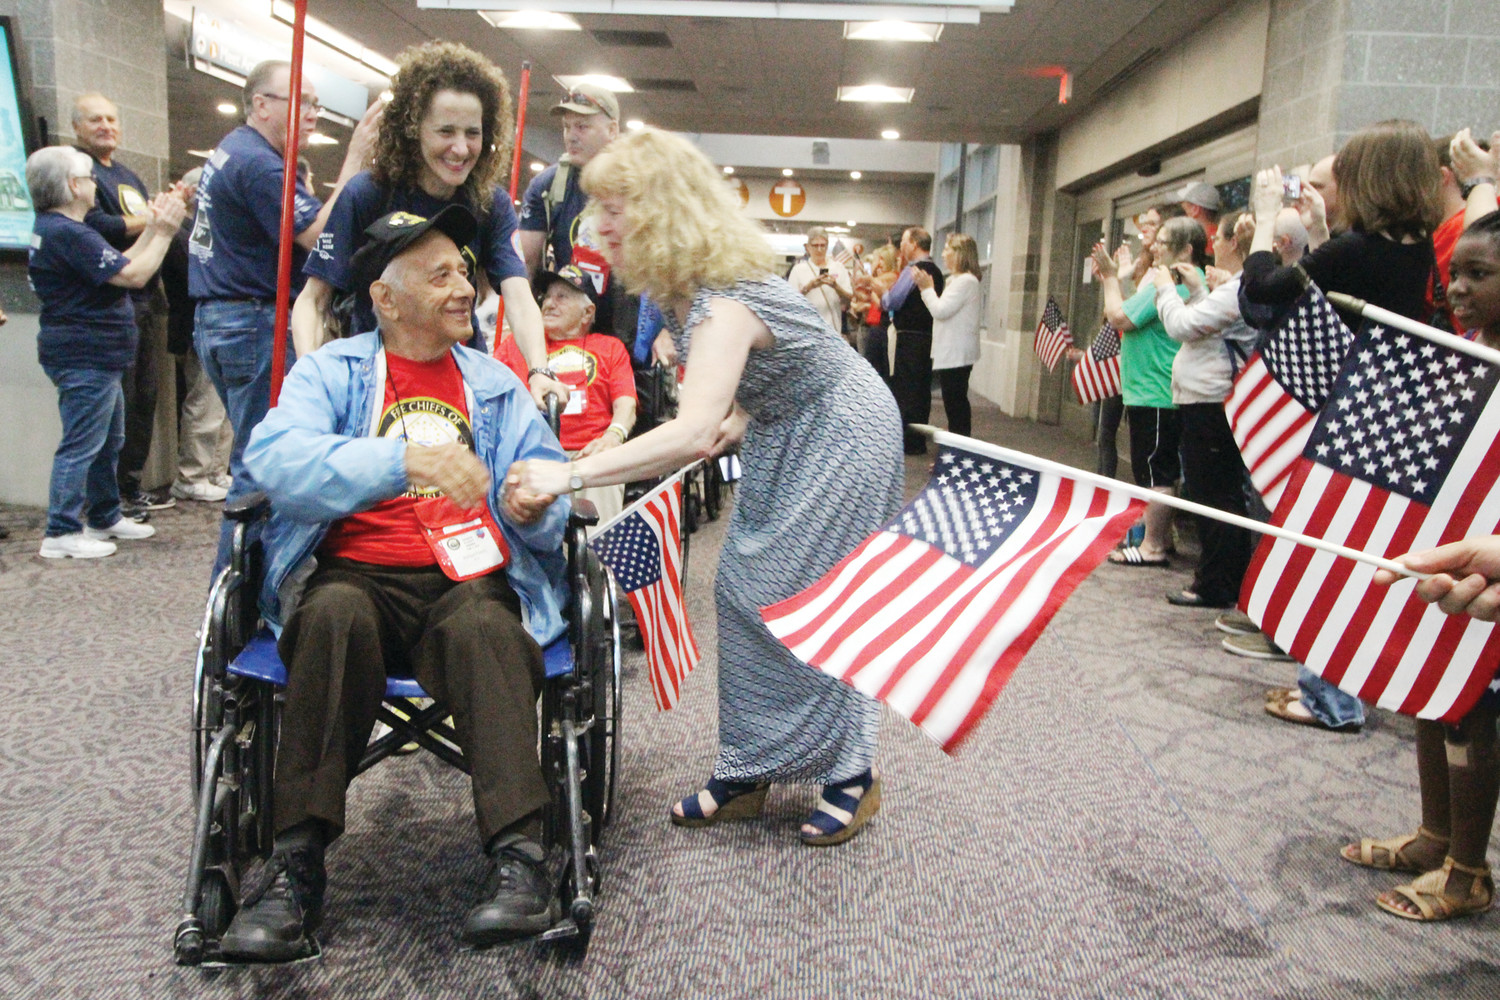 THEIR HERO: WWII Navy veteran Richard Fazzio, 94, being wheeled by Woonsocket Mayor Lisa Baldelli-Hunt, gets a warm reception as he and 23 other veterans on Saturday's Honor Flight arrive at Green Airport.